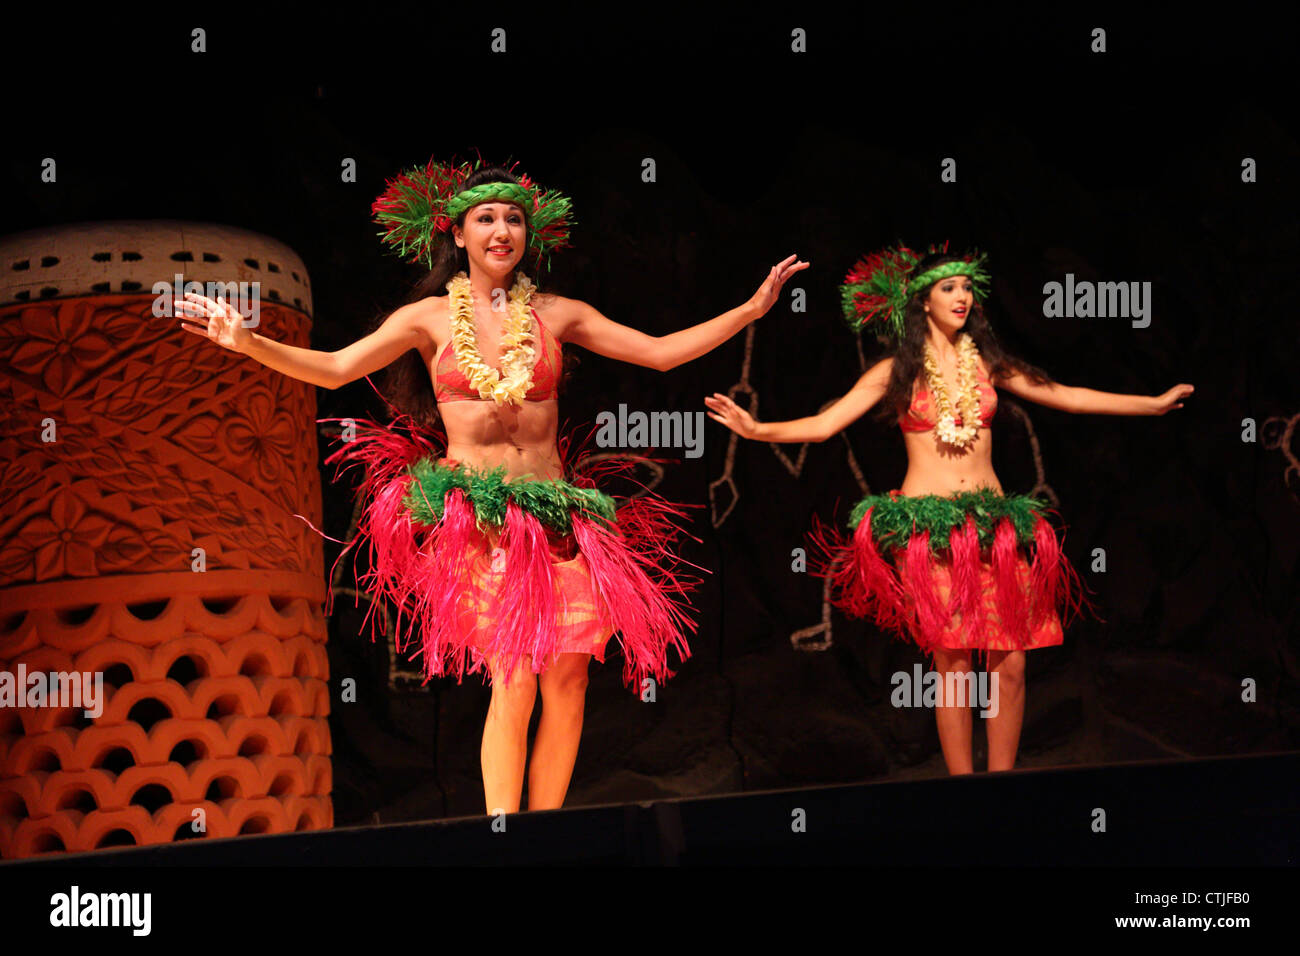 Hula dancers at Hawaiian Luau - Stock Image